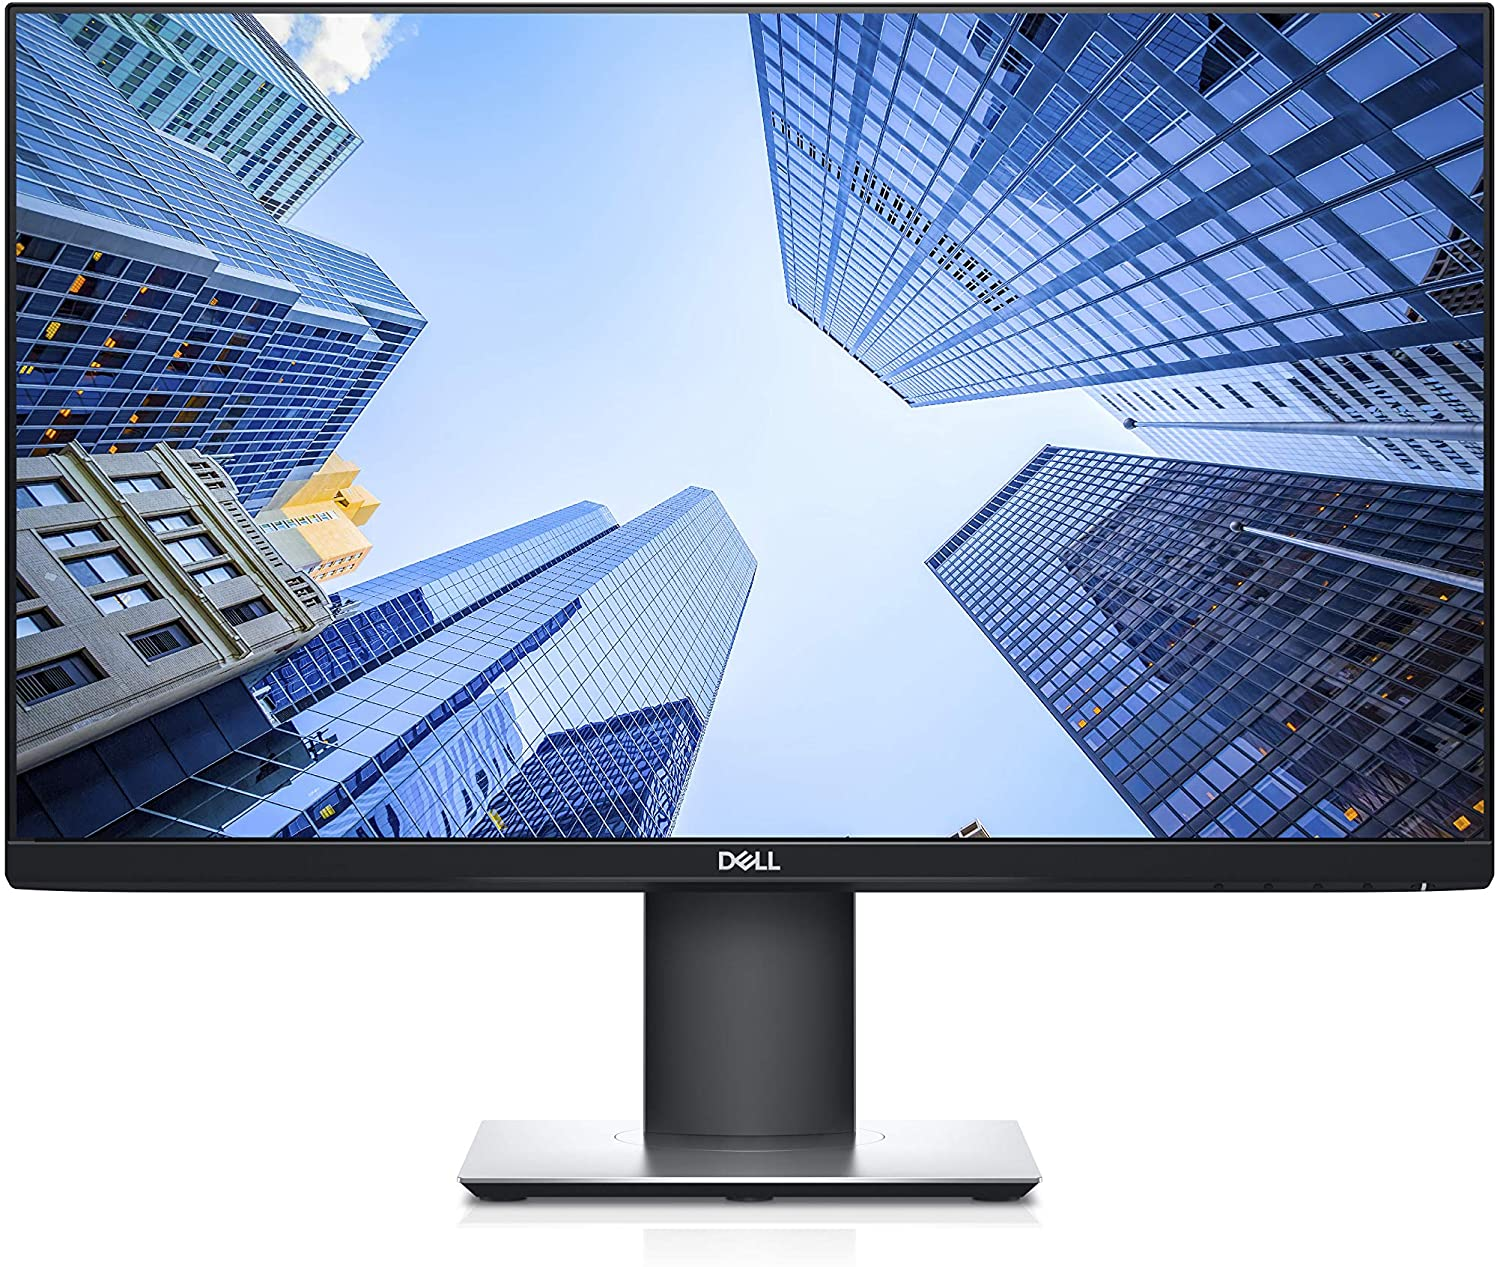 Dell P2419H vertical monitor